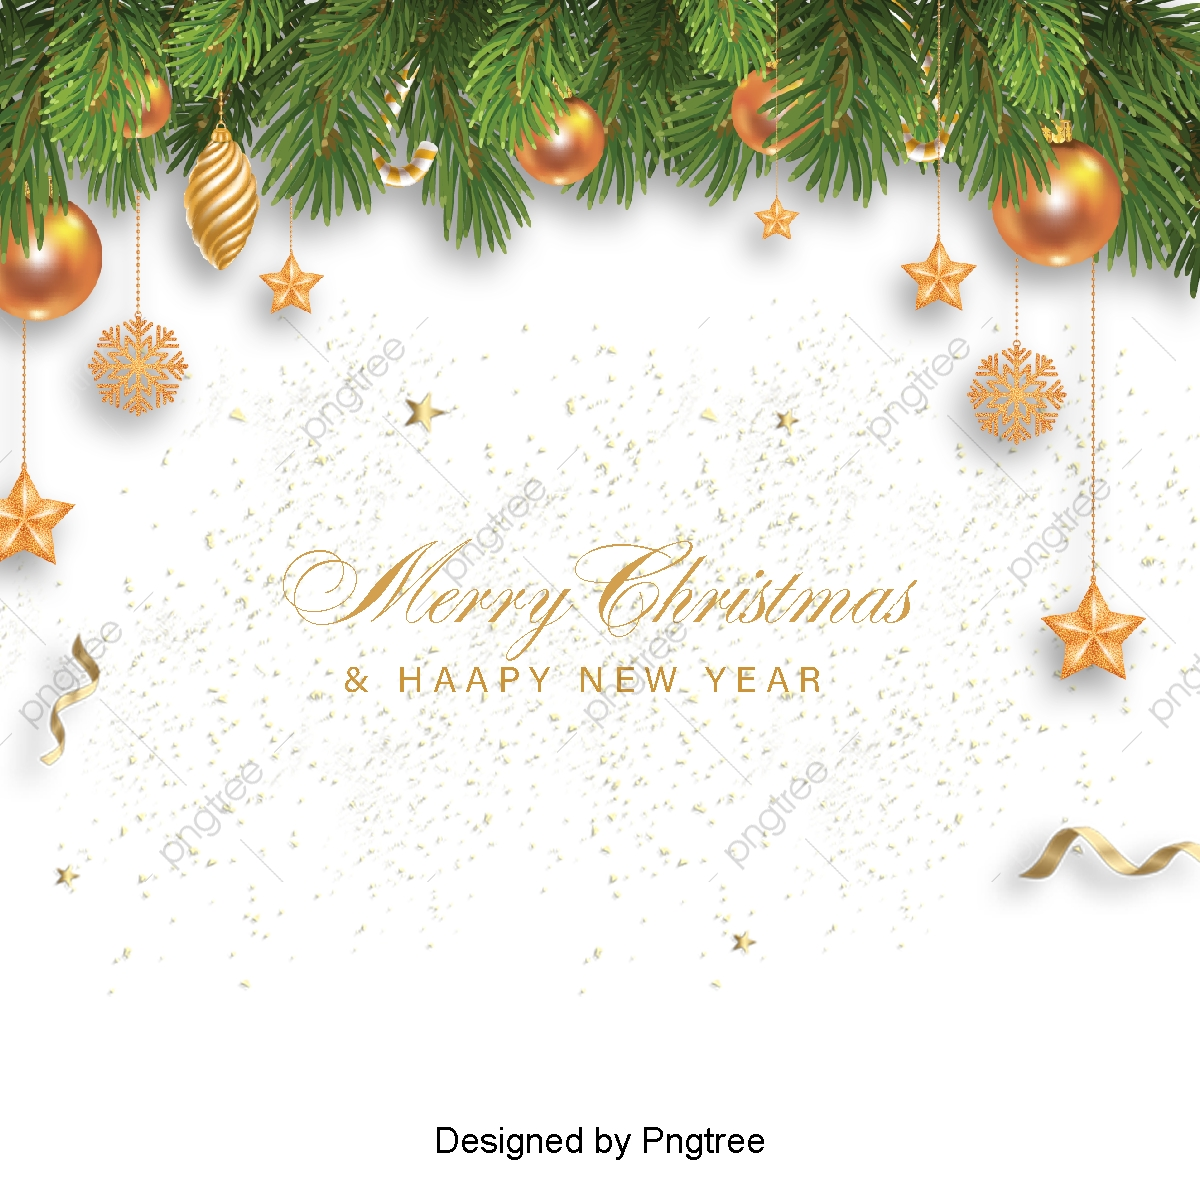 Christmas Backgrounds Png.The Simple Color Background And White Christmas Card Sns